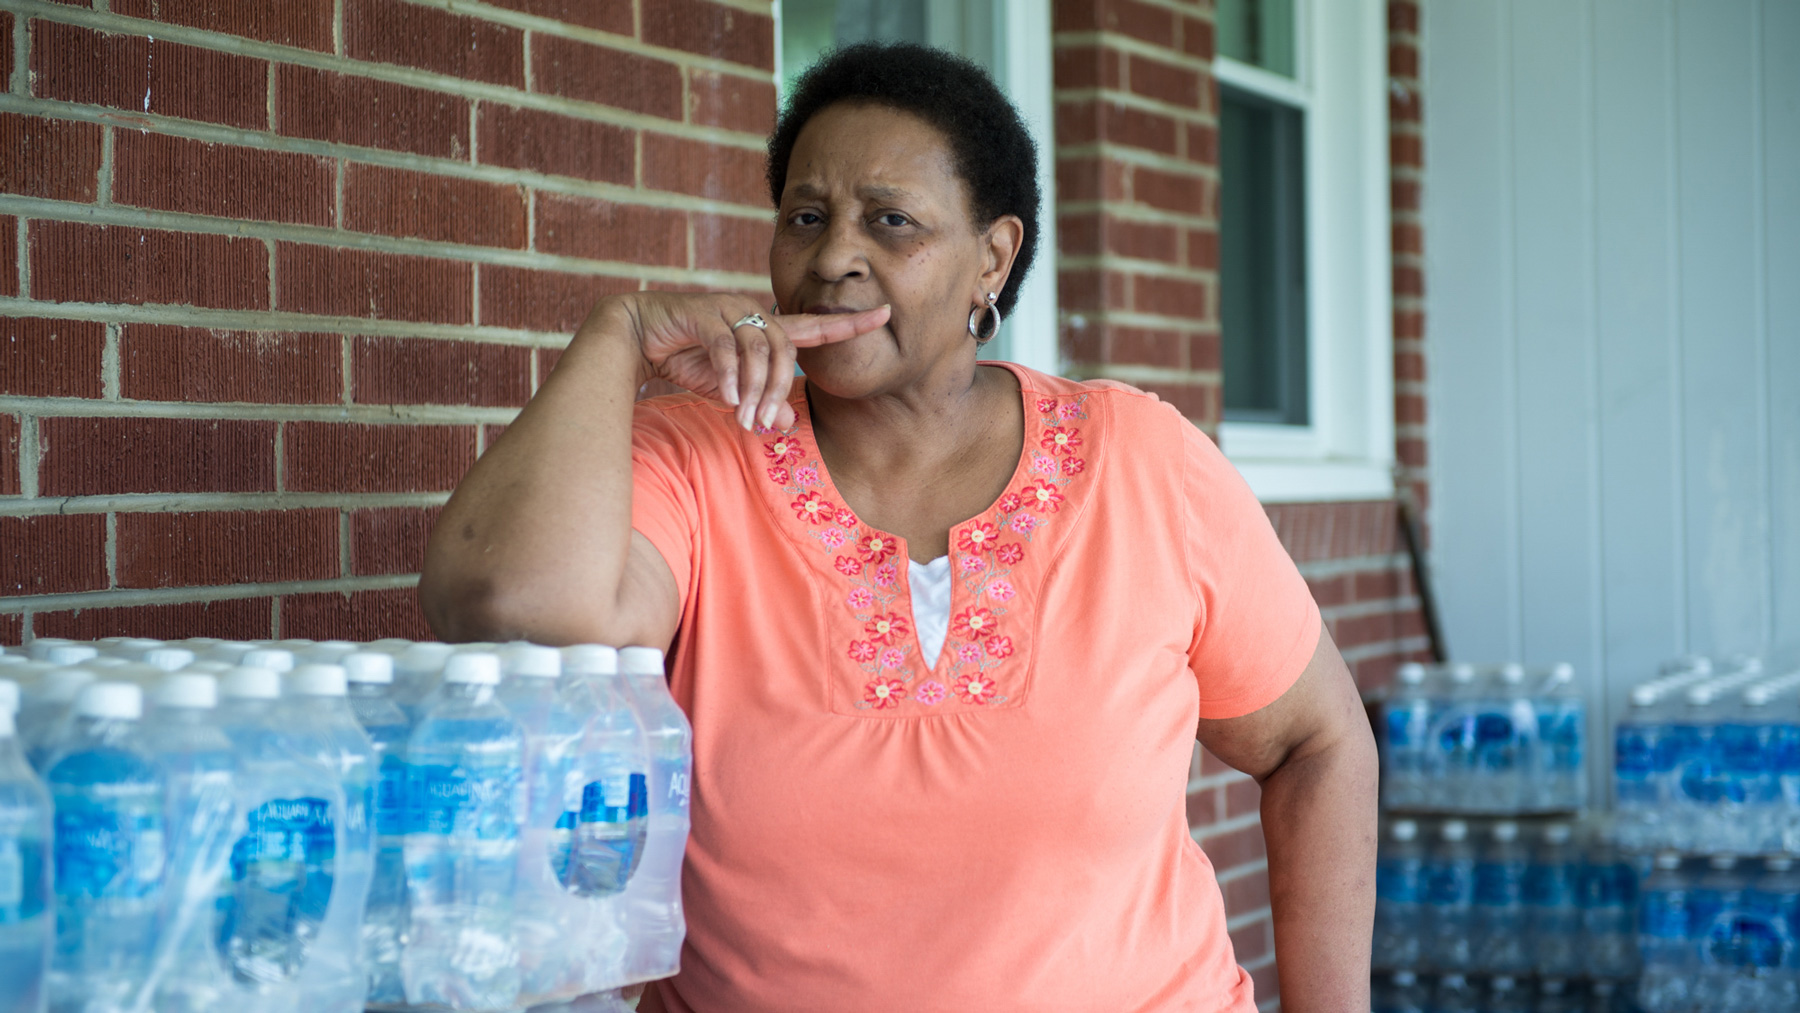 Linda Jamison lives in Semora, N.C., near Duke Energy's Roxboro coal-fired plant, one of the largest power plants in the country. She has been using bottled water since contaminants such as Chromium-6 were found in her well. (Jasmine Spearing-Bowen/News21)